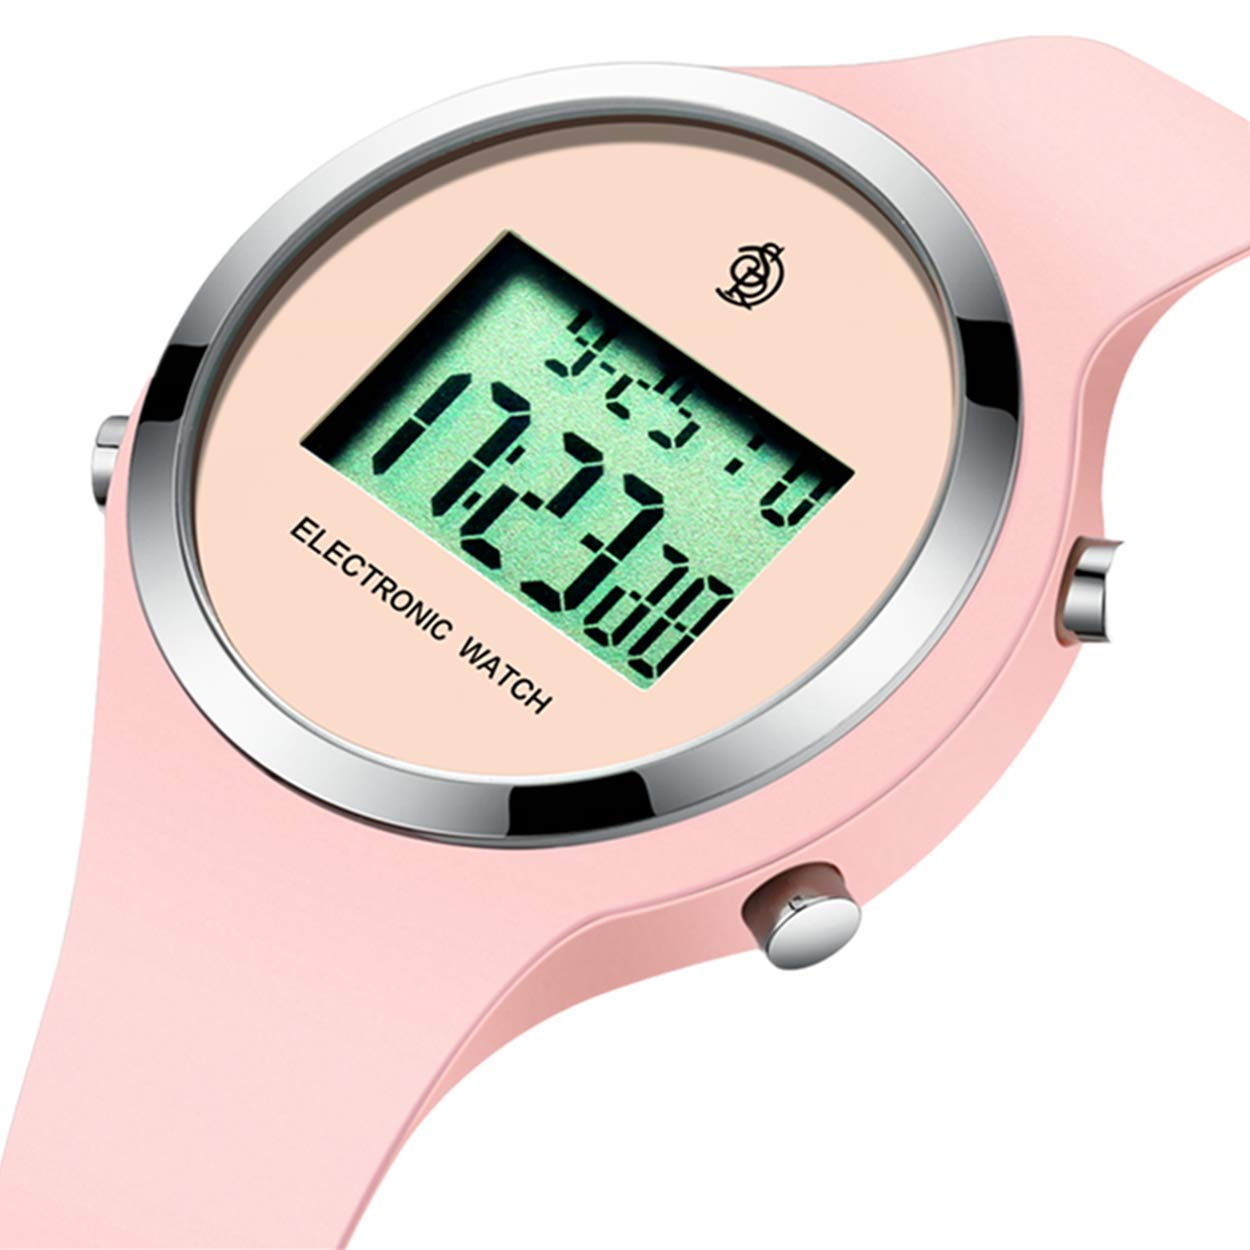 Watch,Girls Digital Jelly Watch Elegant Sports Waterproof Watch,Simple Cute Wrist Watches with Alarm Stopwatch Outdoor LED Multi Functional Wrist Watches (Pink) by BIDEN